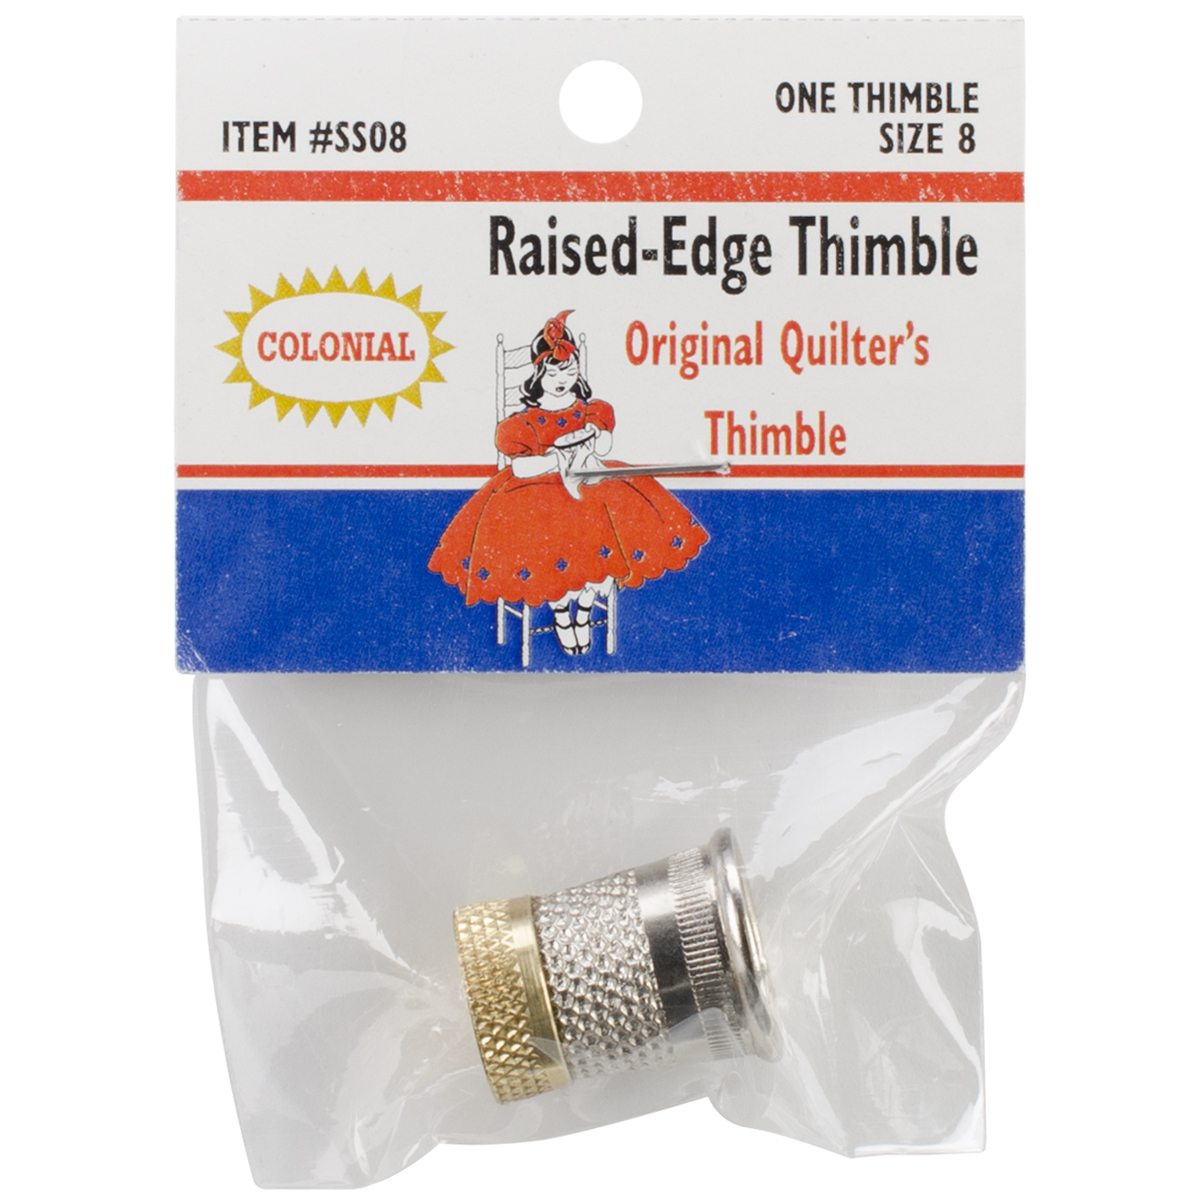 Raised-Edge Thimble-Size 8